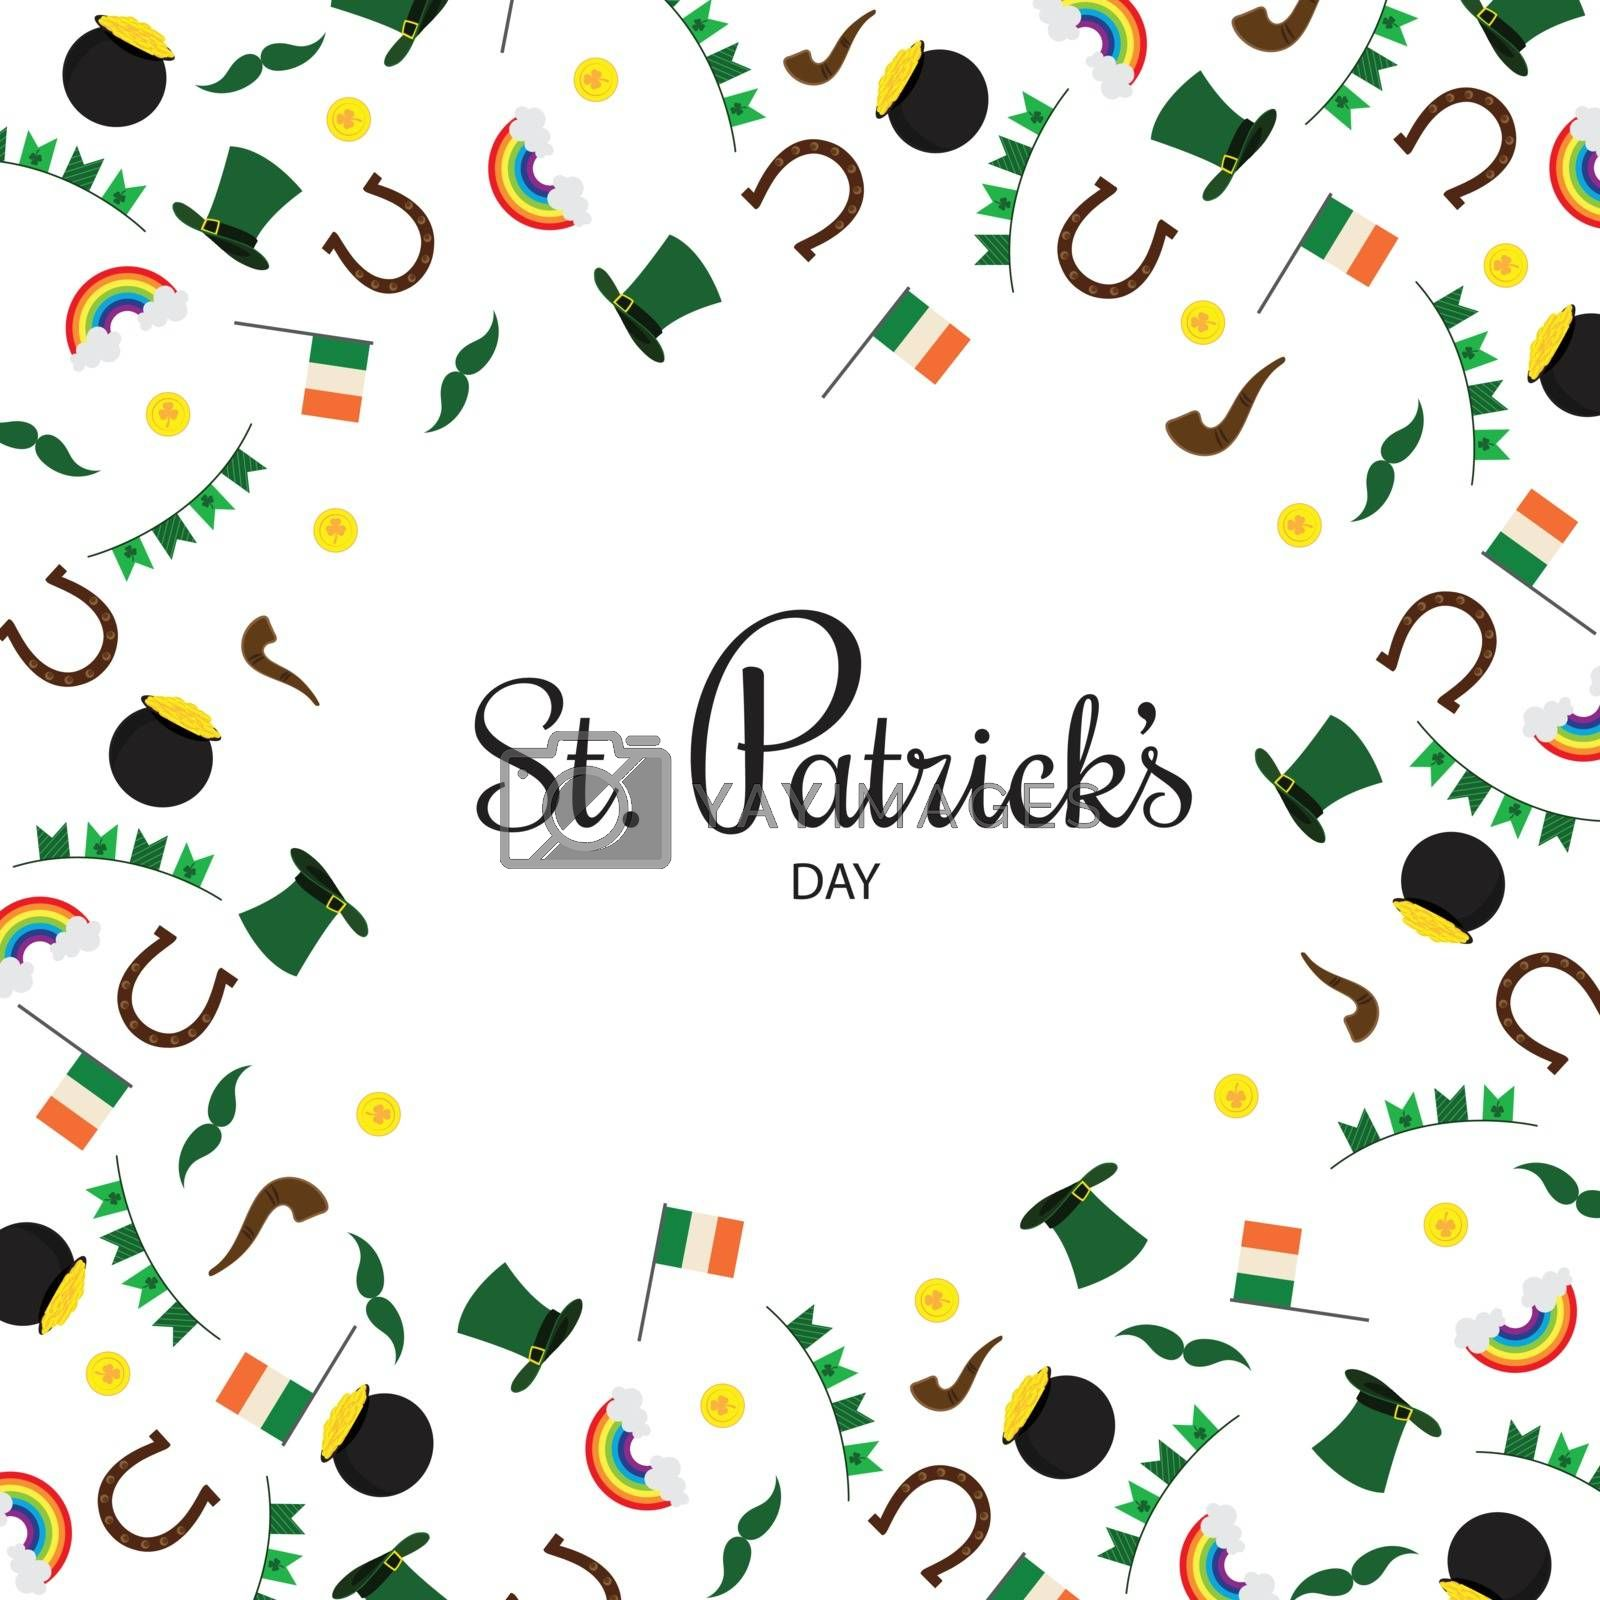 Royalty free image of Festival elements decorated white background for St. Patrick's D by aispl